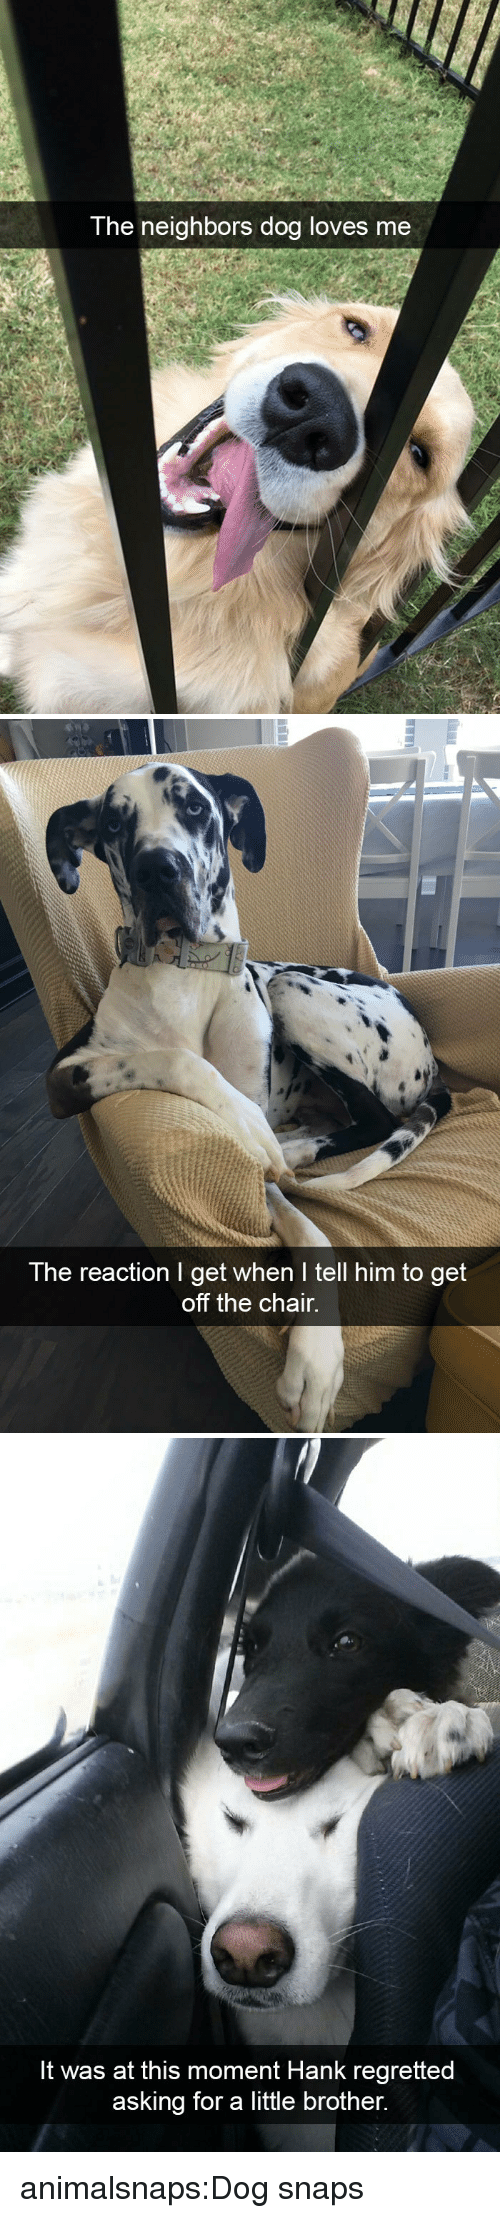 Hank: The neighbors doa loves me   The reaction I get when I tell him to get  off the chair.   It was at this moment Hank regretted  asking for a little brother. animalsnaps:Dog snaps